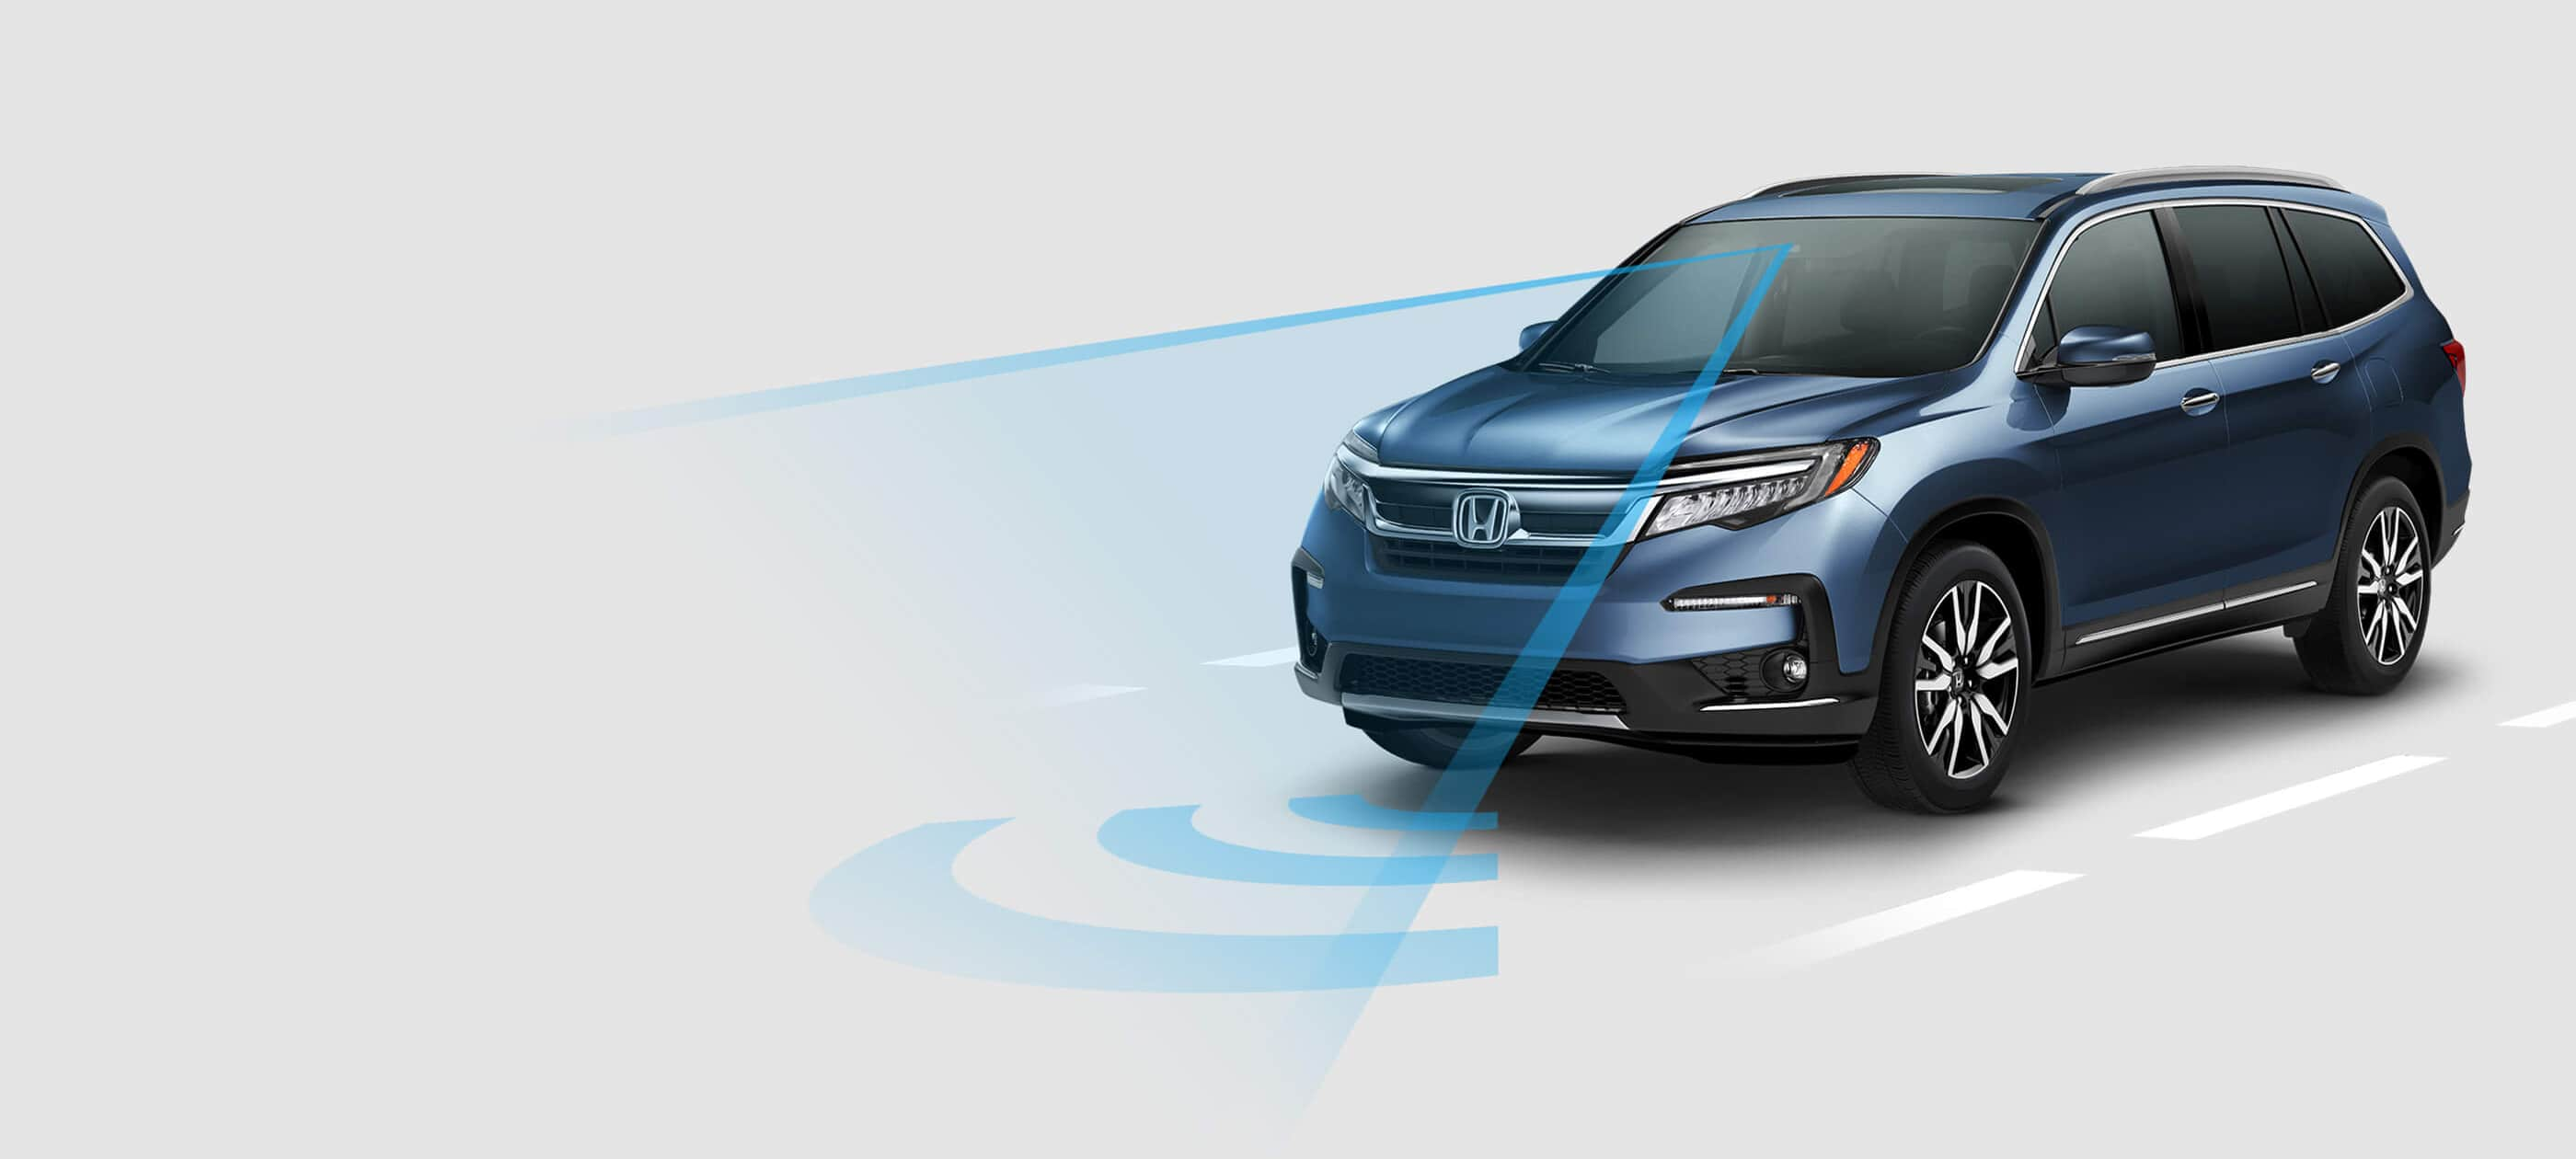 2019 Honda Pilot East Coast Modern Family Suv Towing Wiring Harness Sensing